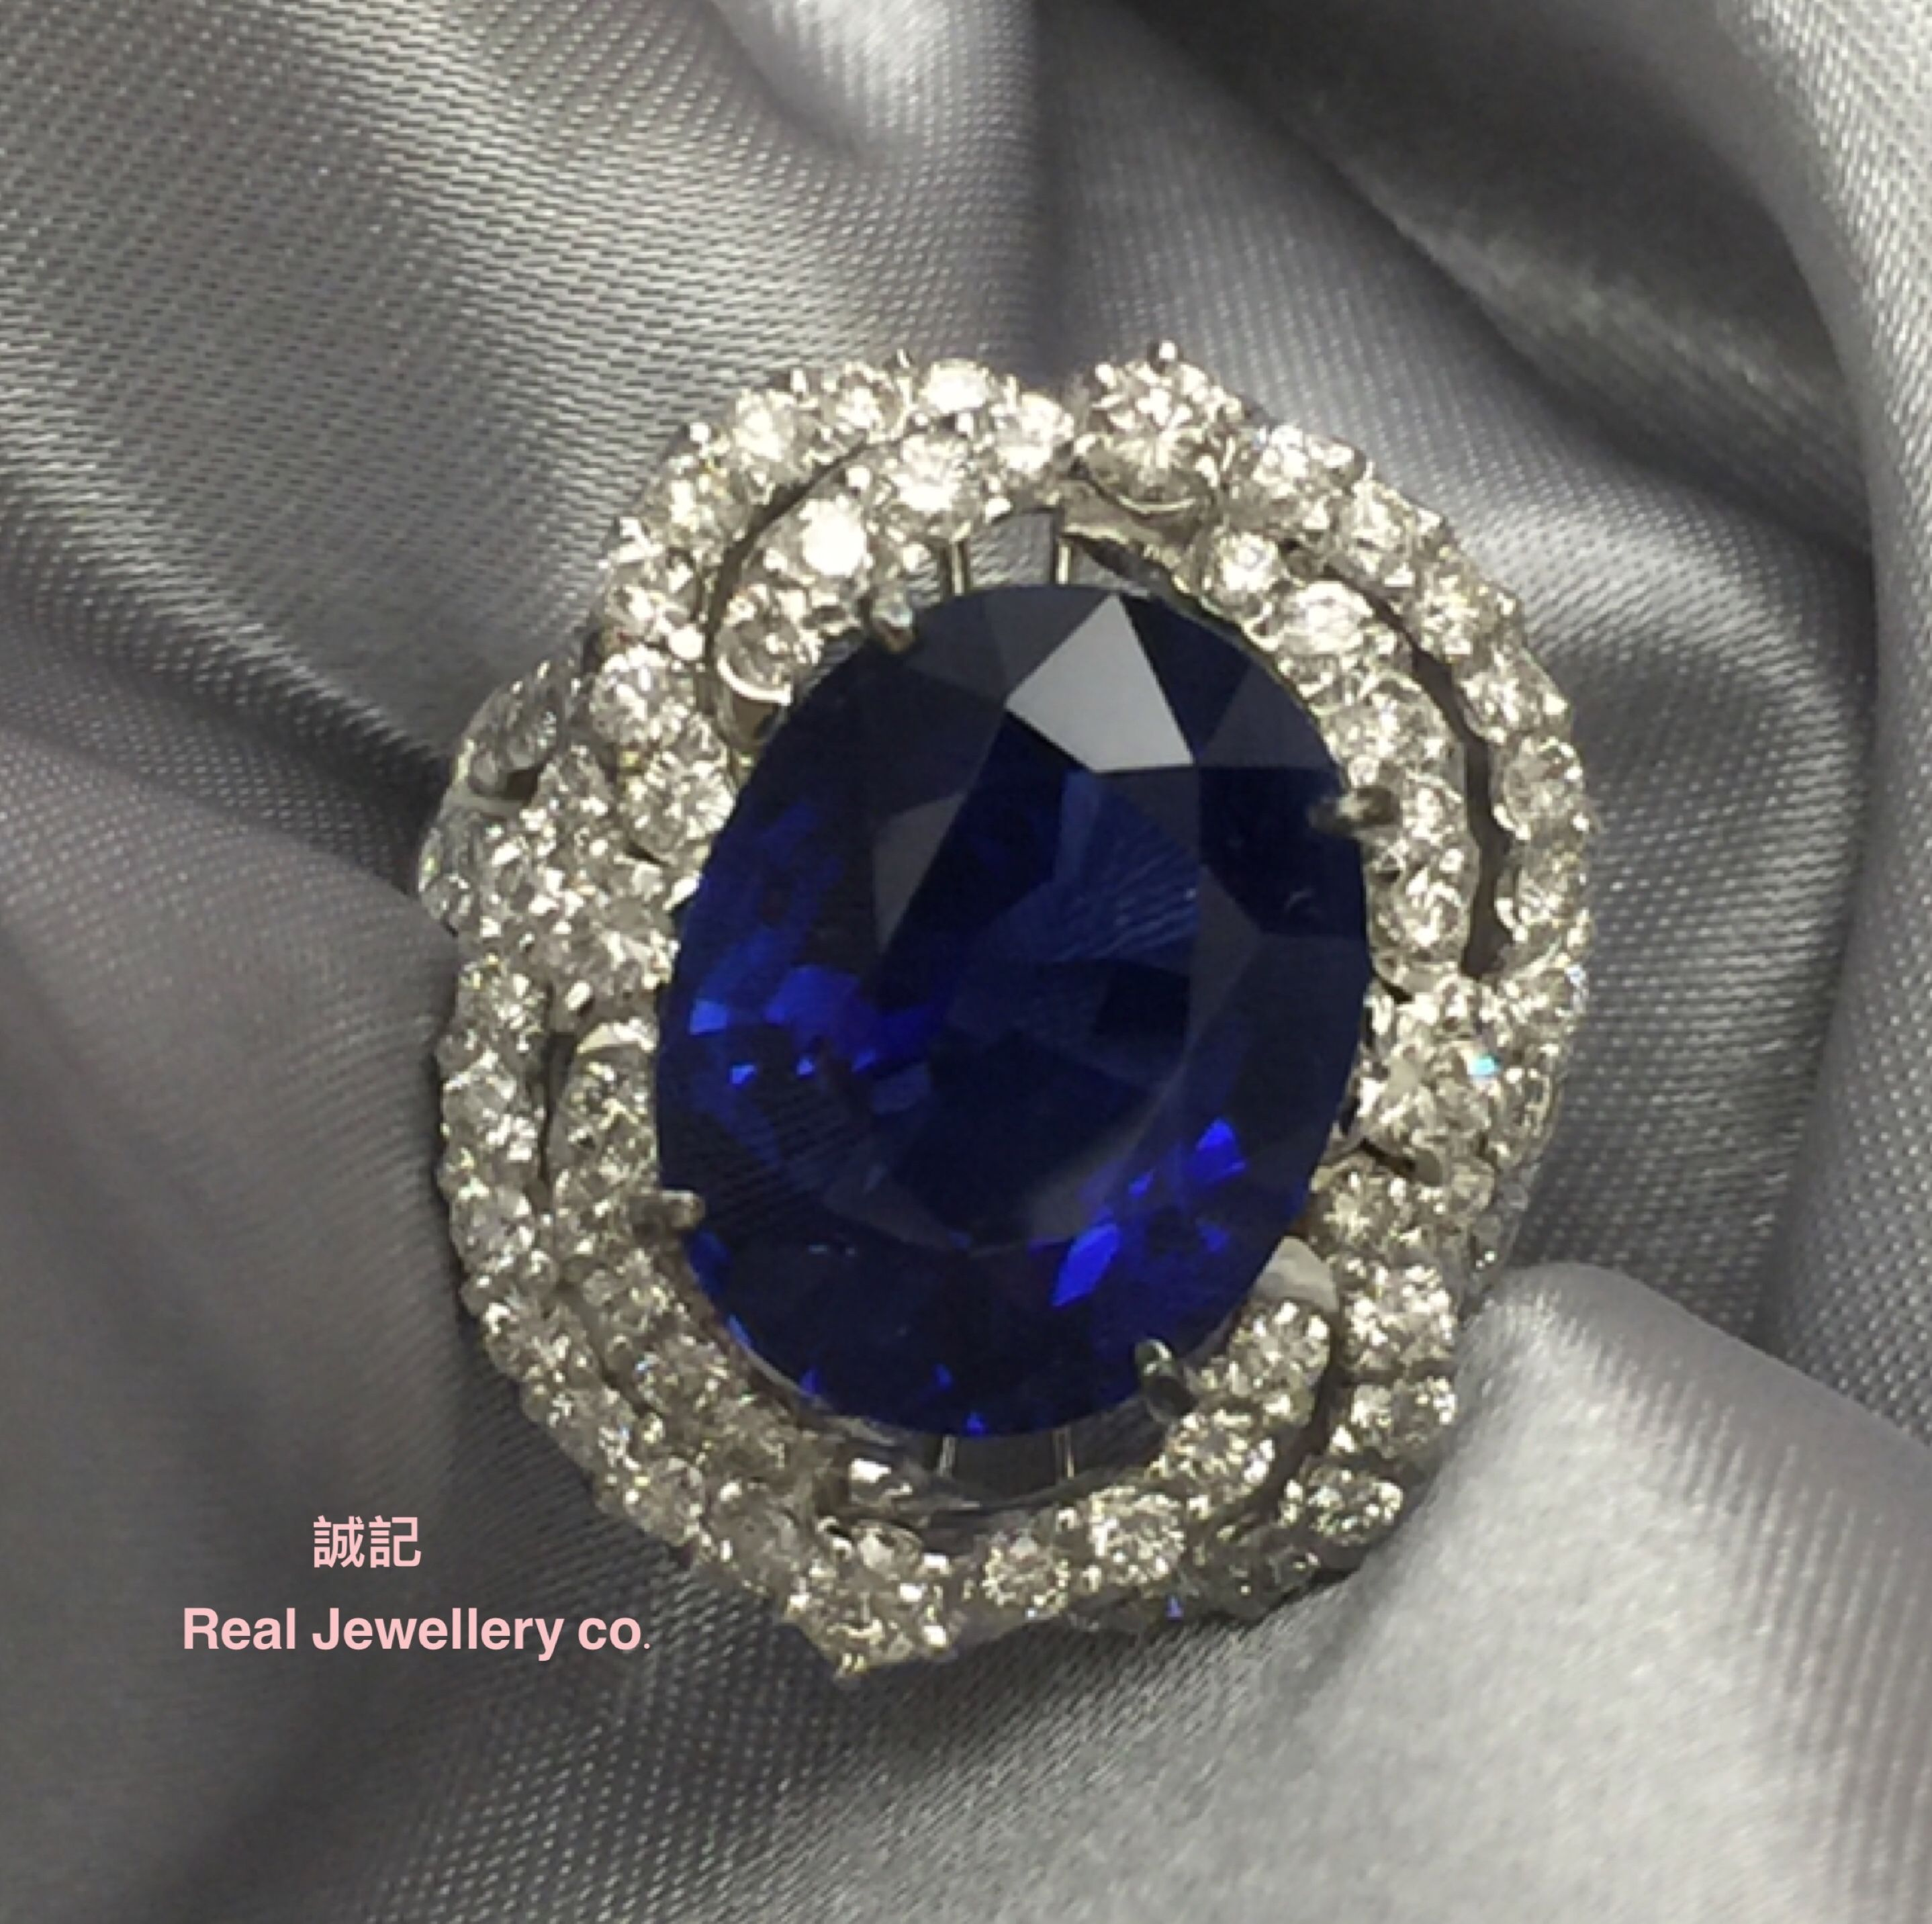 revoni gold real to click women in itm on ring enlarge solid diamond the sapphire blue yellow image for zoom